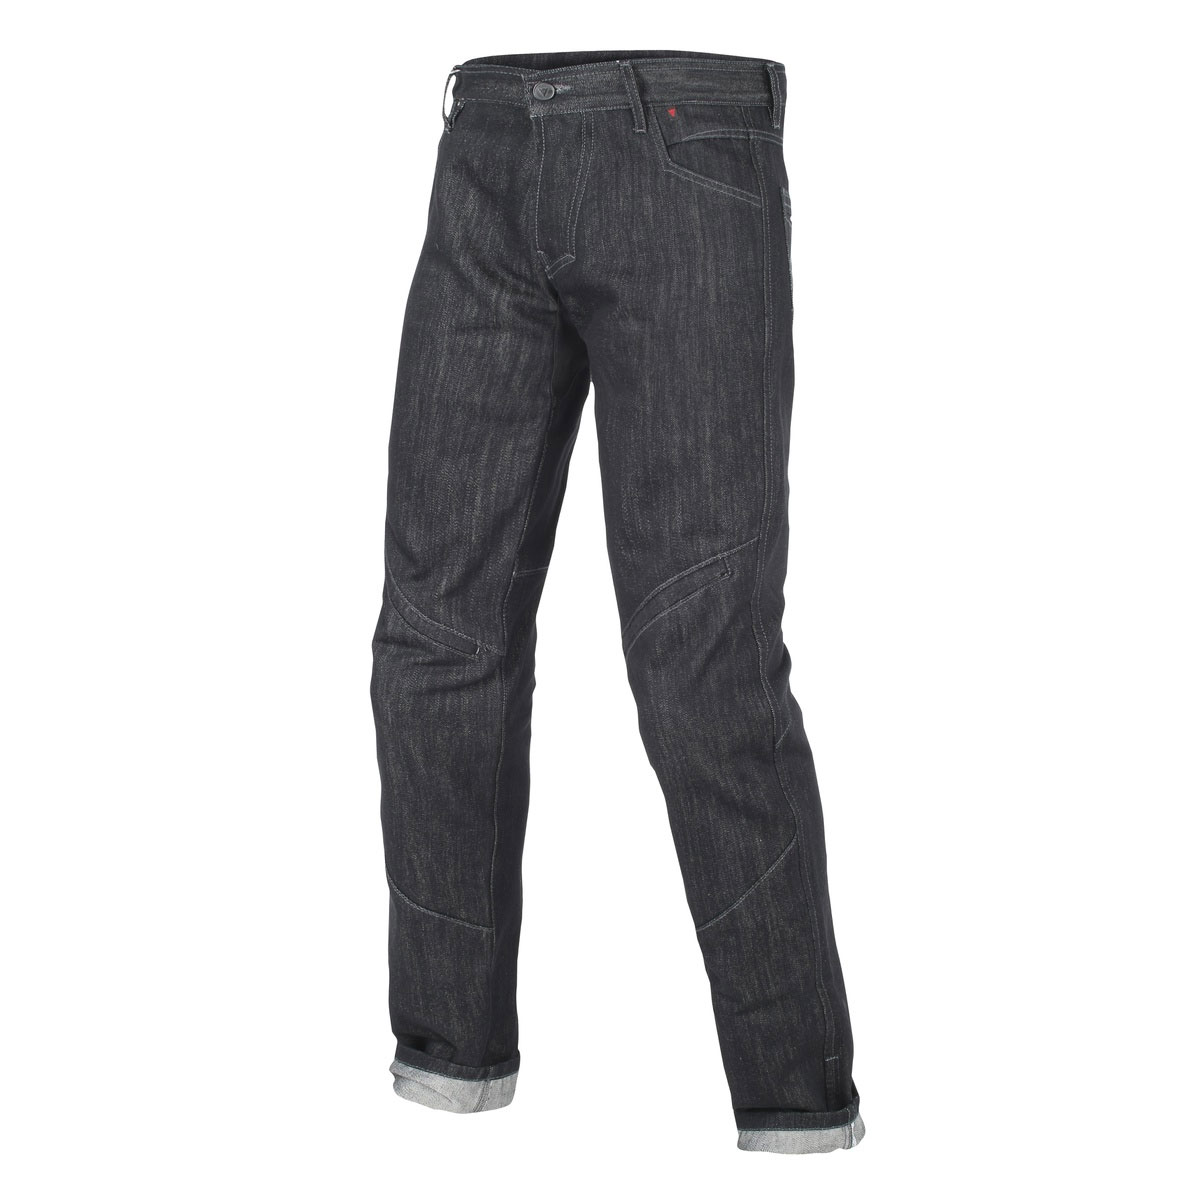 Dainese Charger Regular Jeans